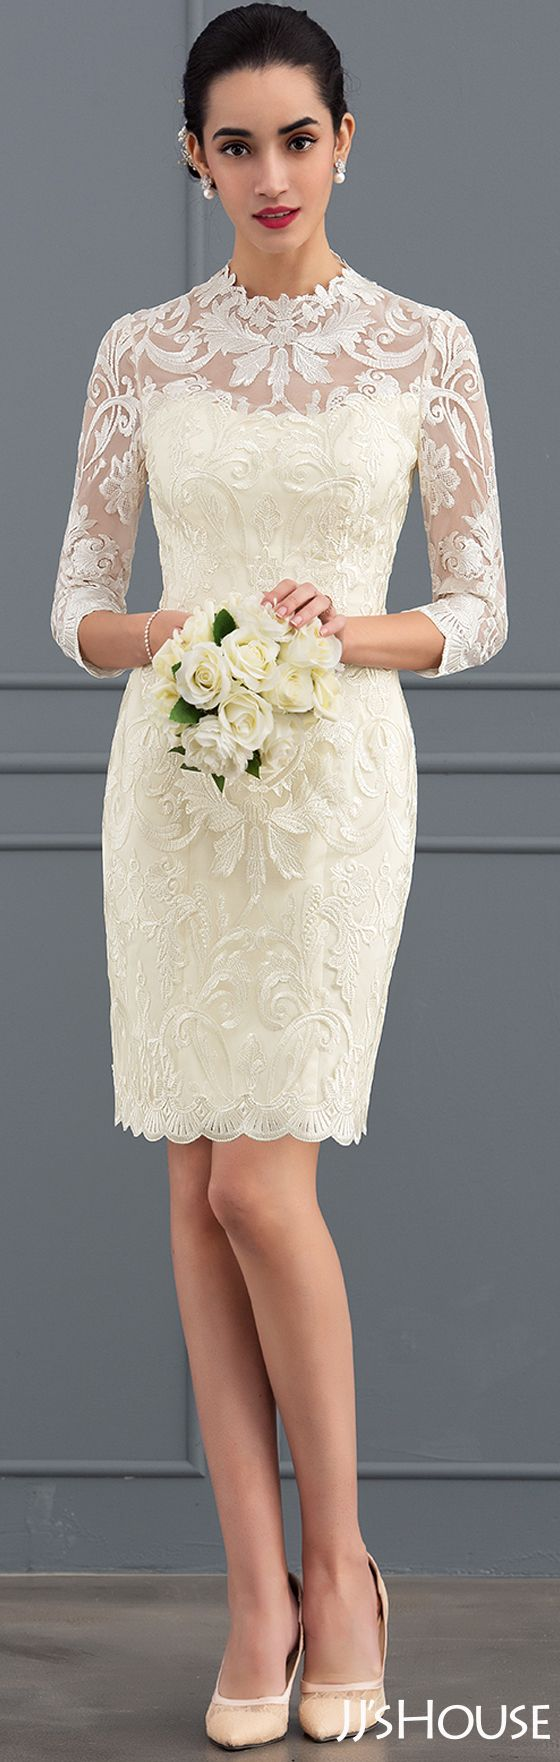 This sheath wedding dress is excellent! #JJsHouse #Wedding